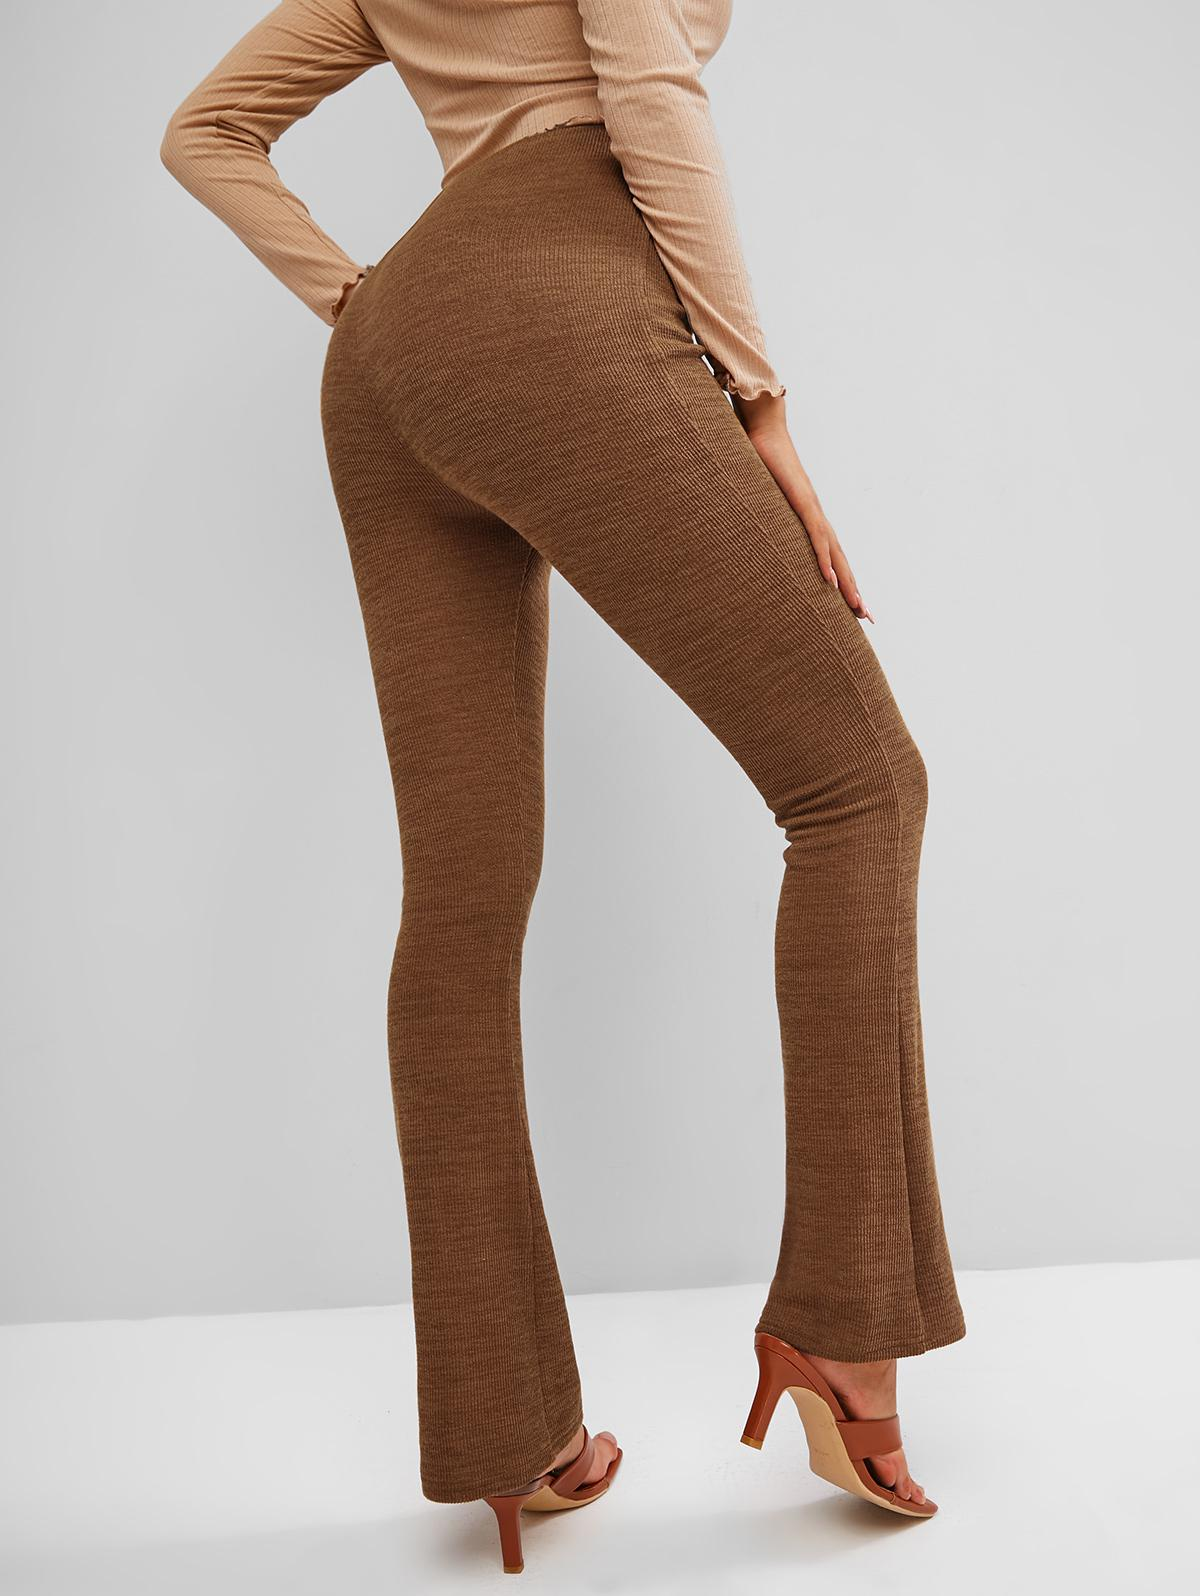 ZAFUL Knitted High Waisted Boot Cut Pants